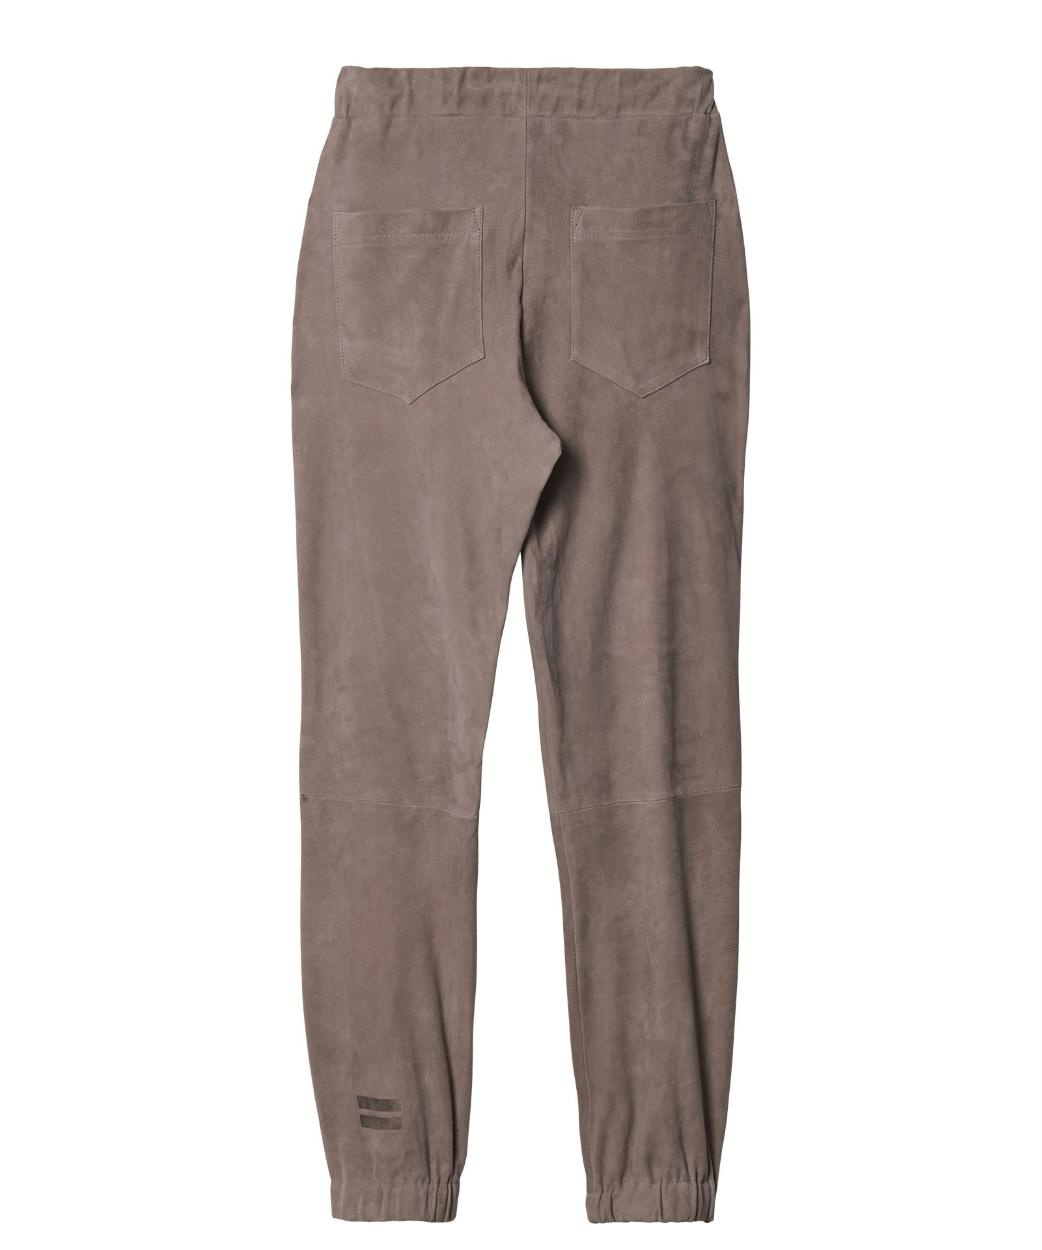 10Days Suede Leather Jogger 20.055.9103/8